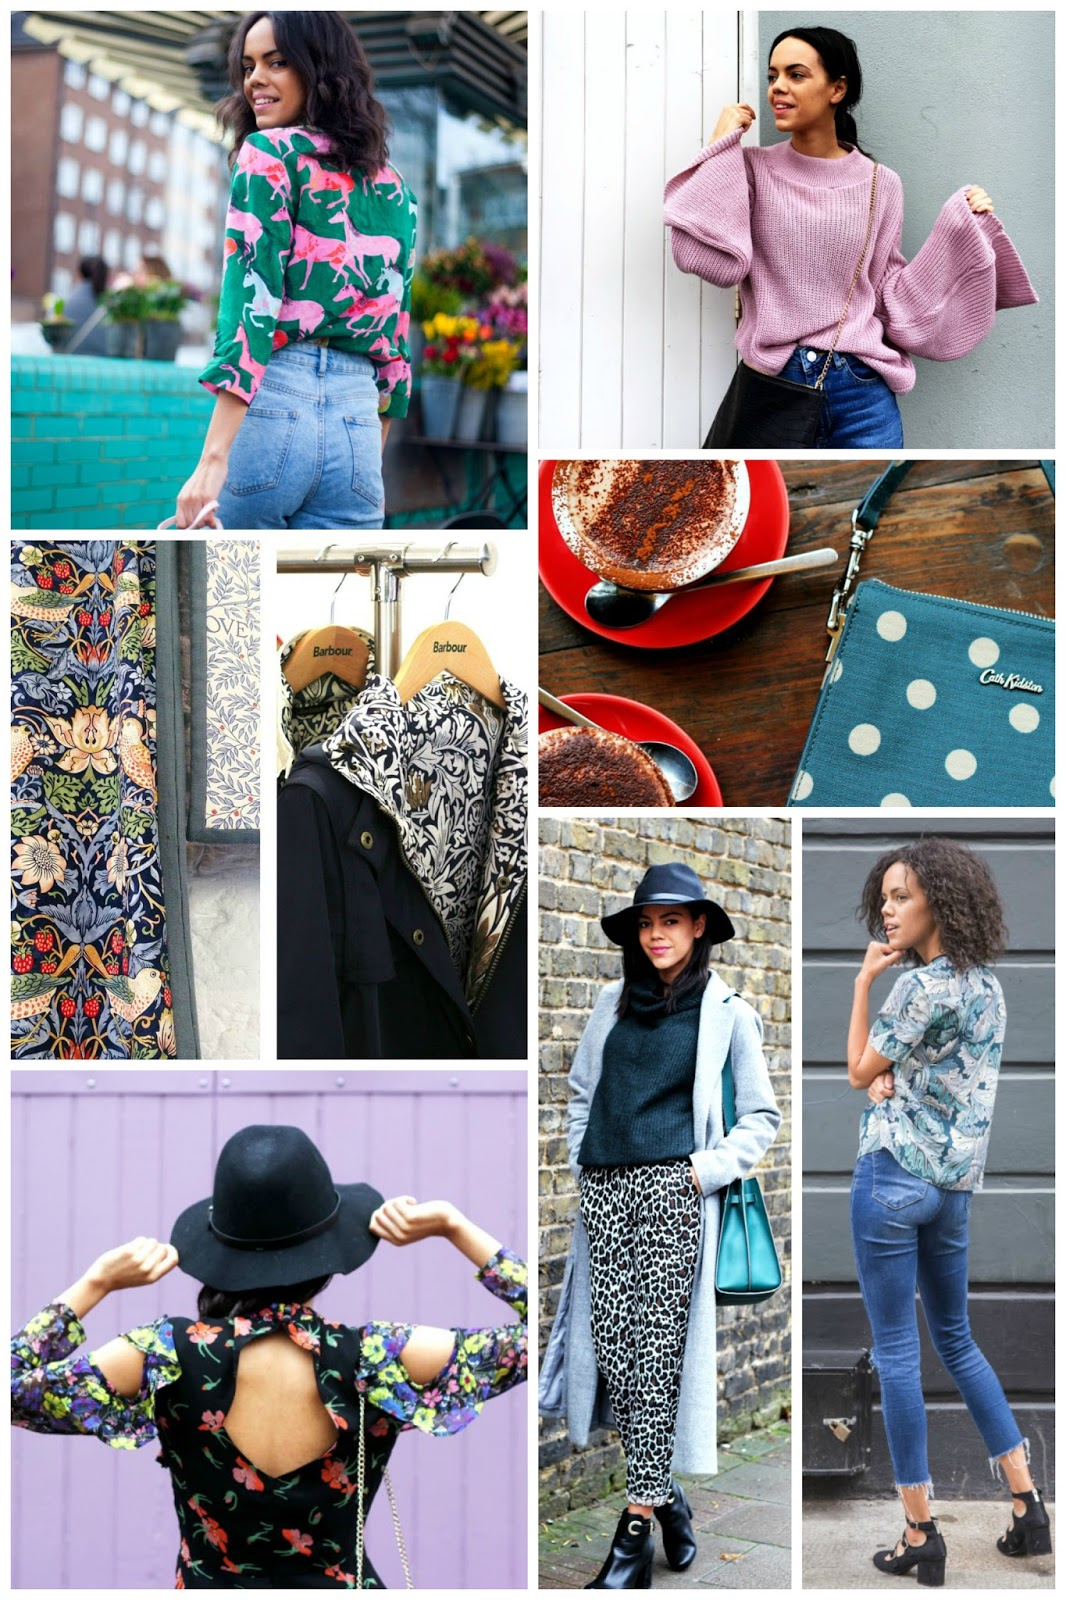 blogger crush, blog recommendation, favourite blog, Jazzabelle's Diary, UK blogger, british blogger, colourful fashion blog, patterned clothes, style blogger, street style